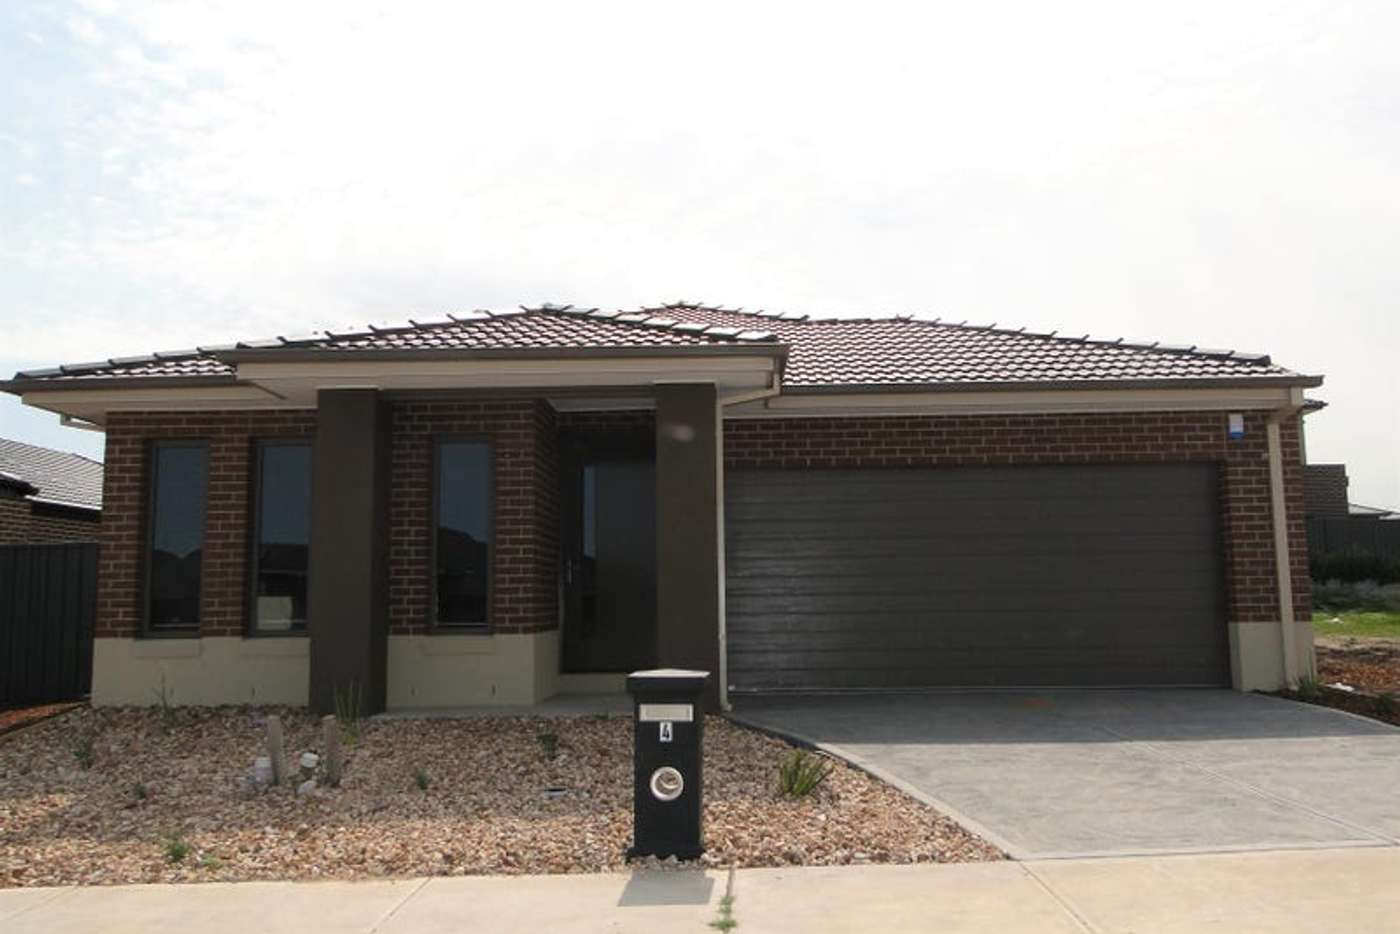 Main view of Homely house listing, 4 Allure Drive, Greenvale VIC 3059